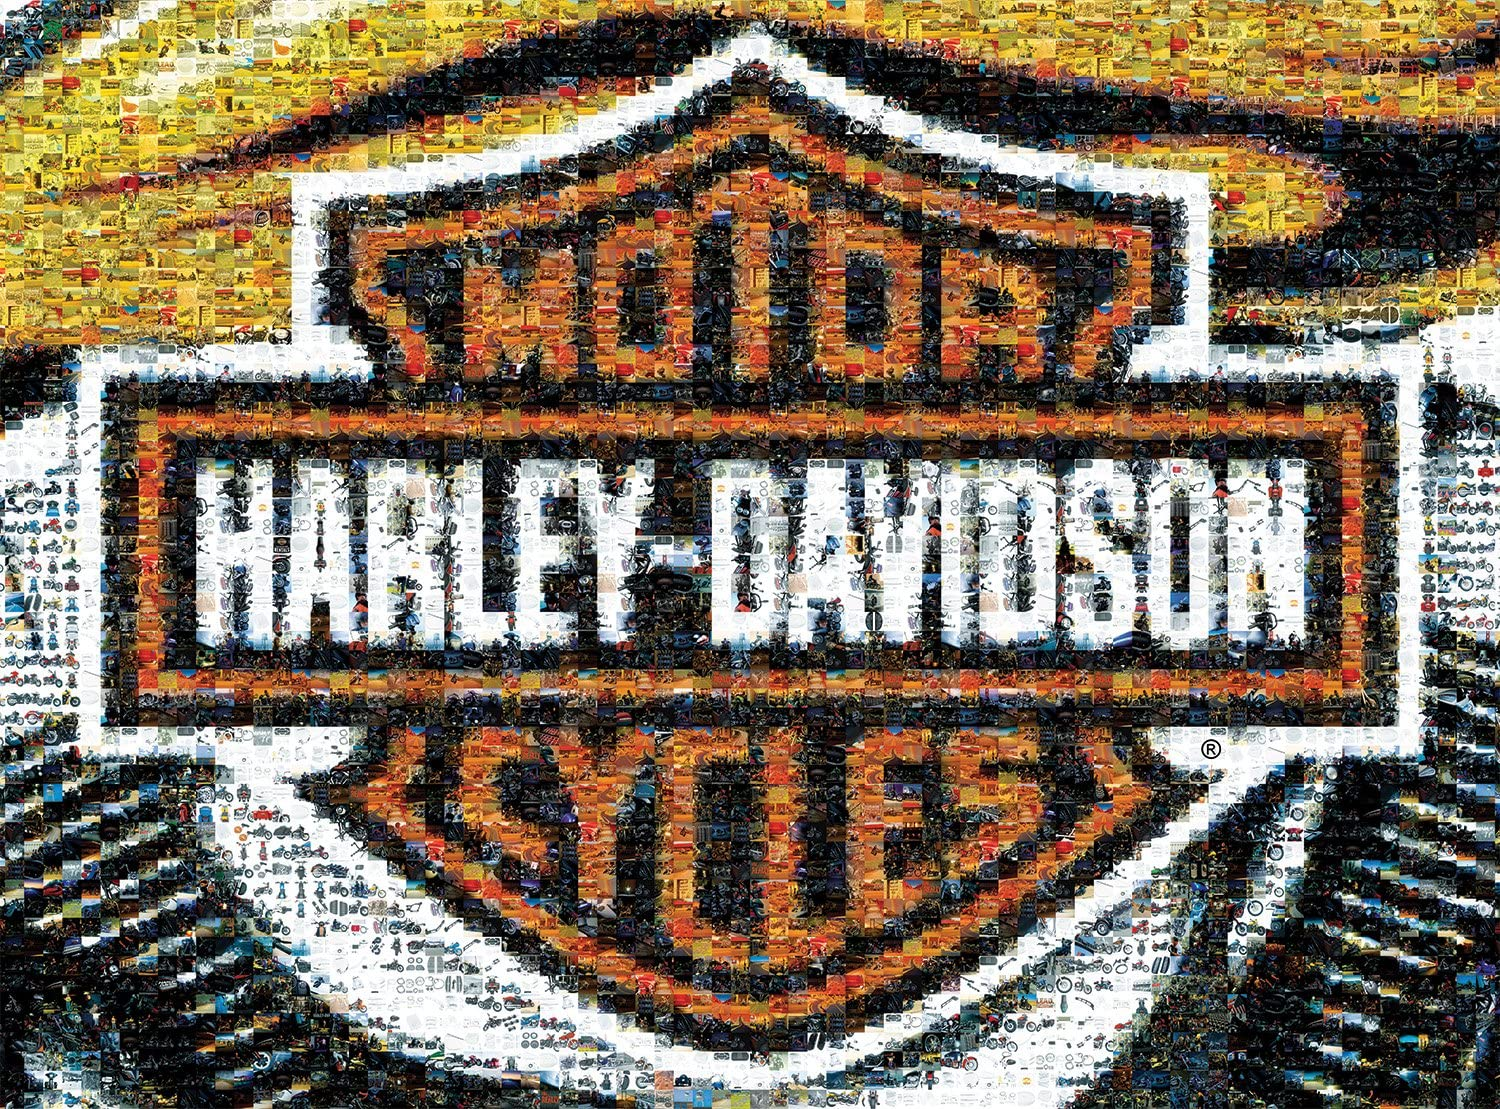 Buffalo Games Photomosaic, Harley-Davidson - 1000pc Jigsaw Puzzle